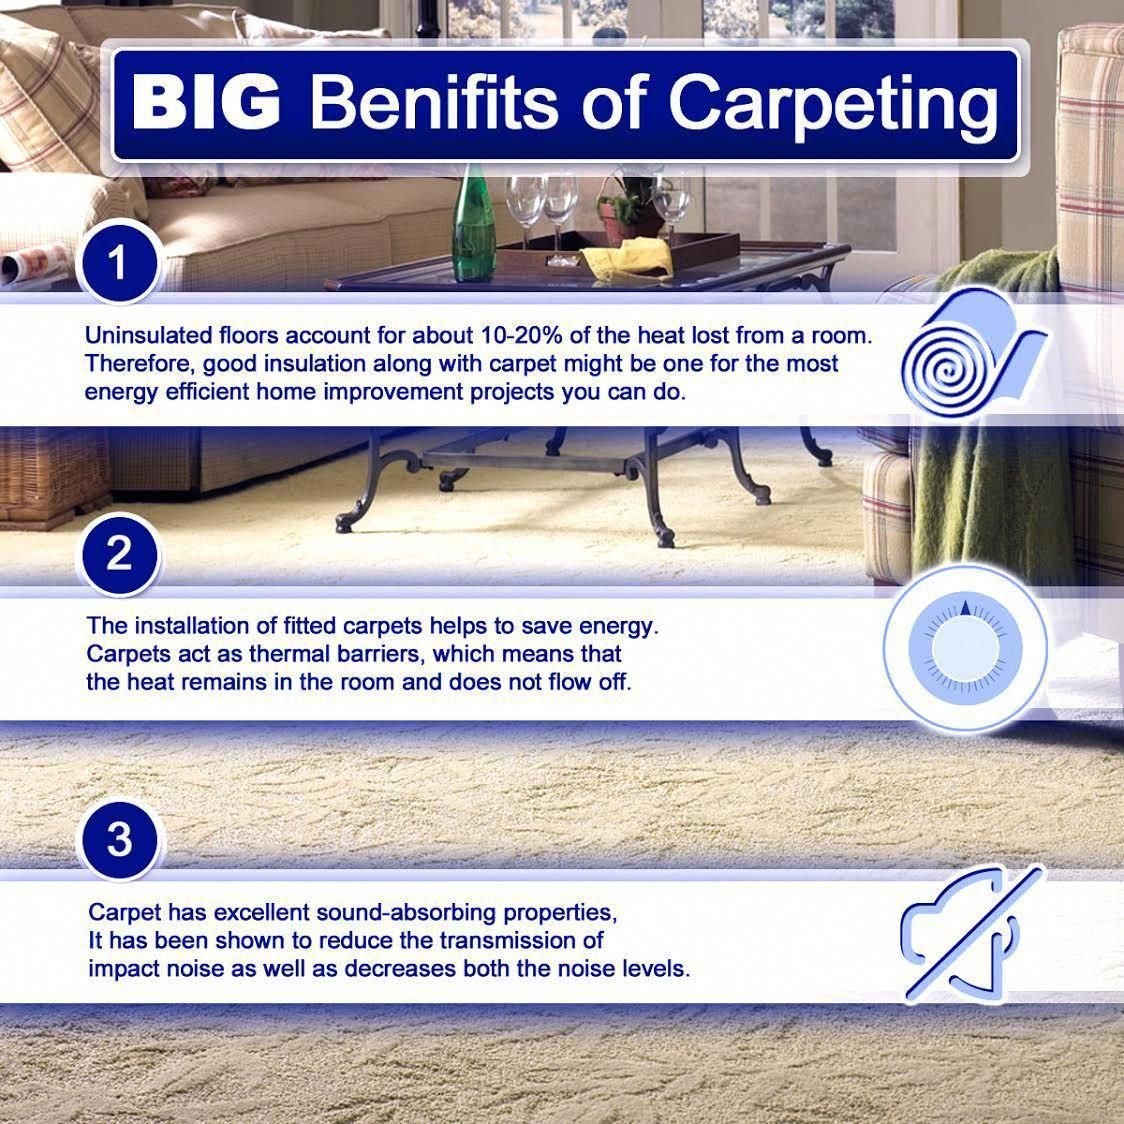 Discount Carpet Runners For Hall Code 3961910965 Carpetsforkids Buying Carpet Carpets For Kids Energy Efficient Homes